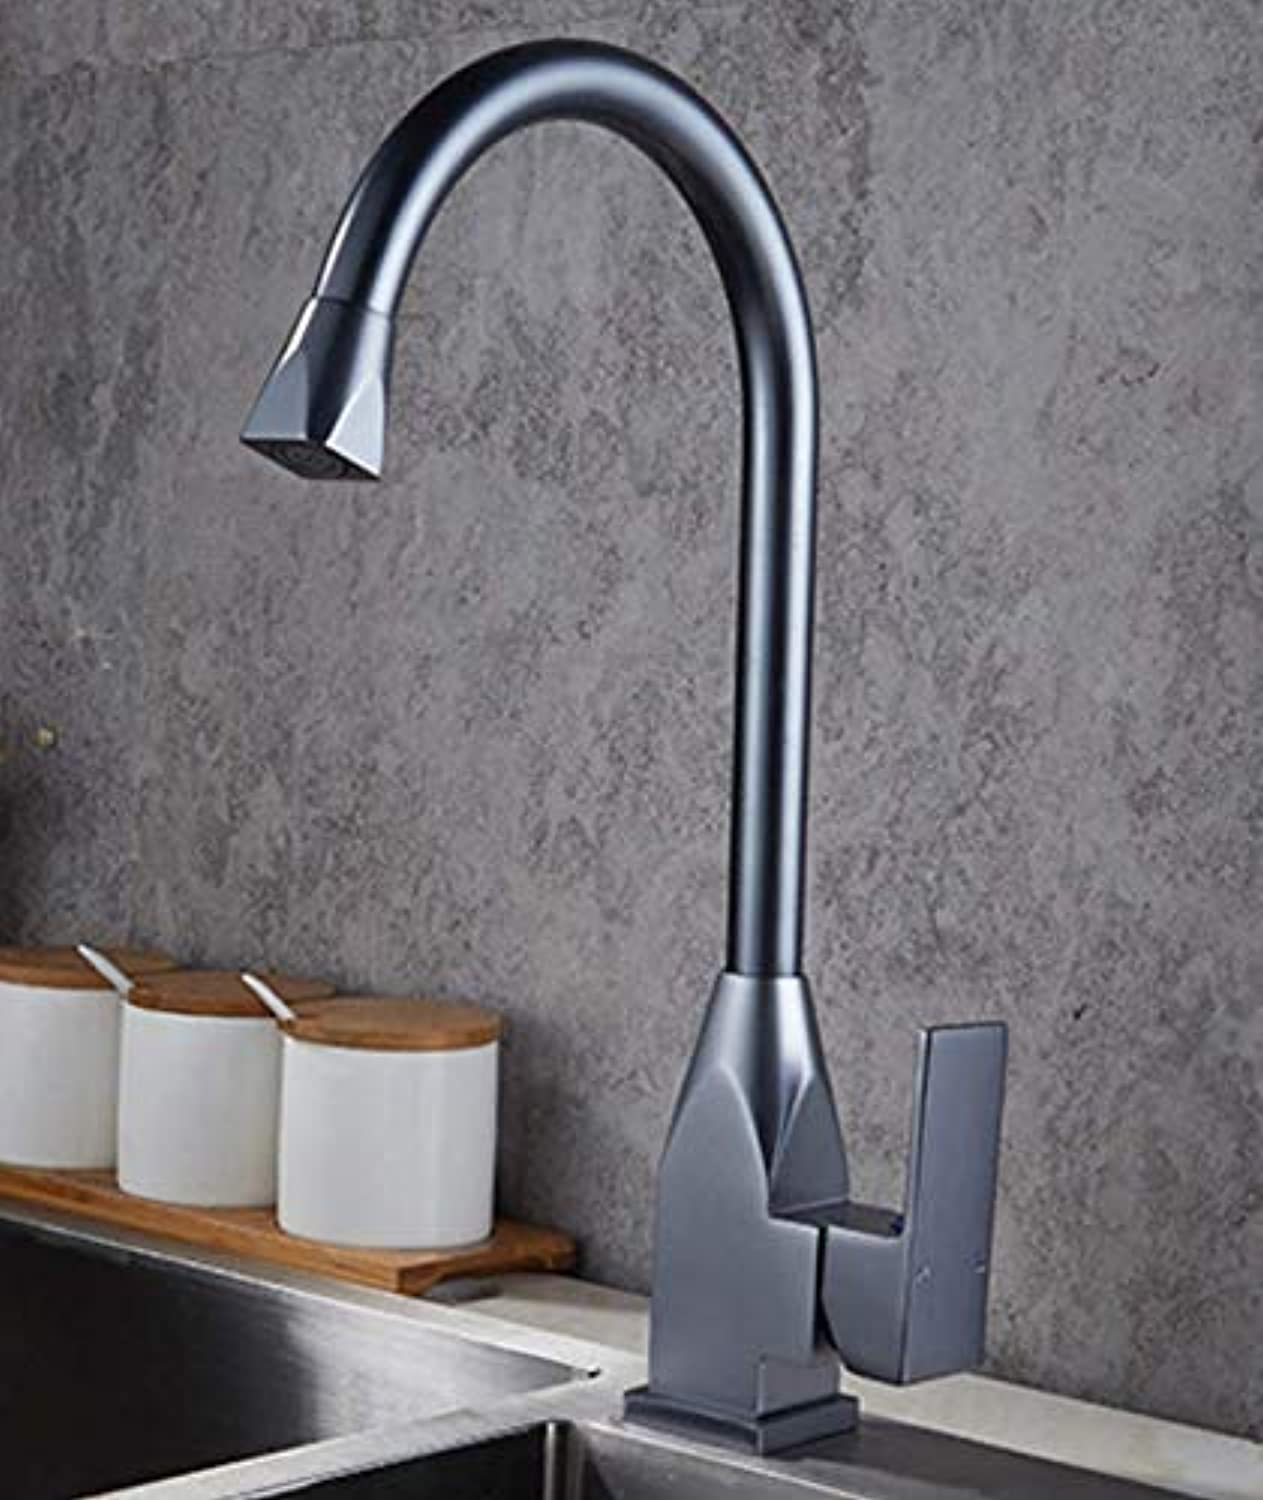 MONFS-Bathroom tap Taps Kitchen greenical Black Faucet Faucet Hot And Cold Double Control Sink Sink Mixer Taps